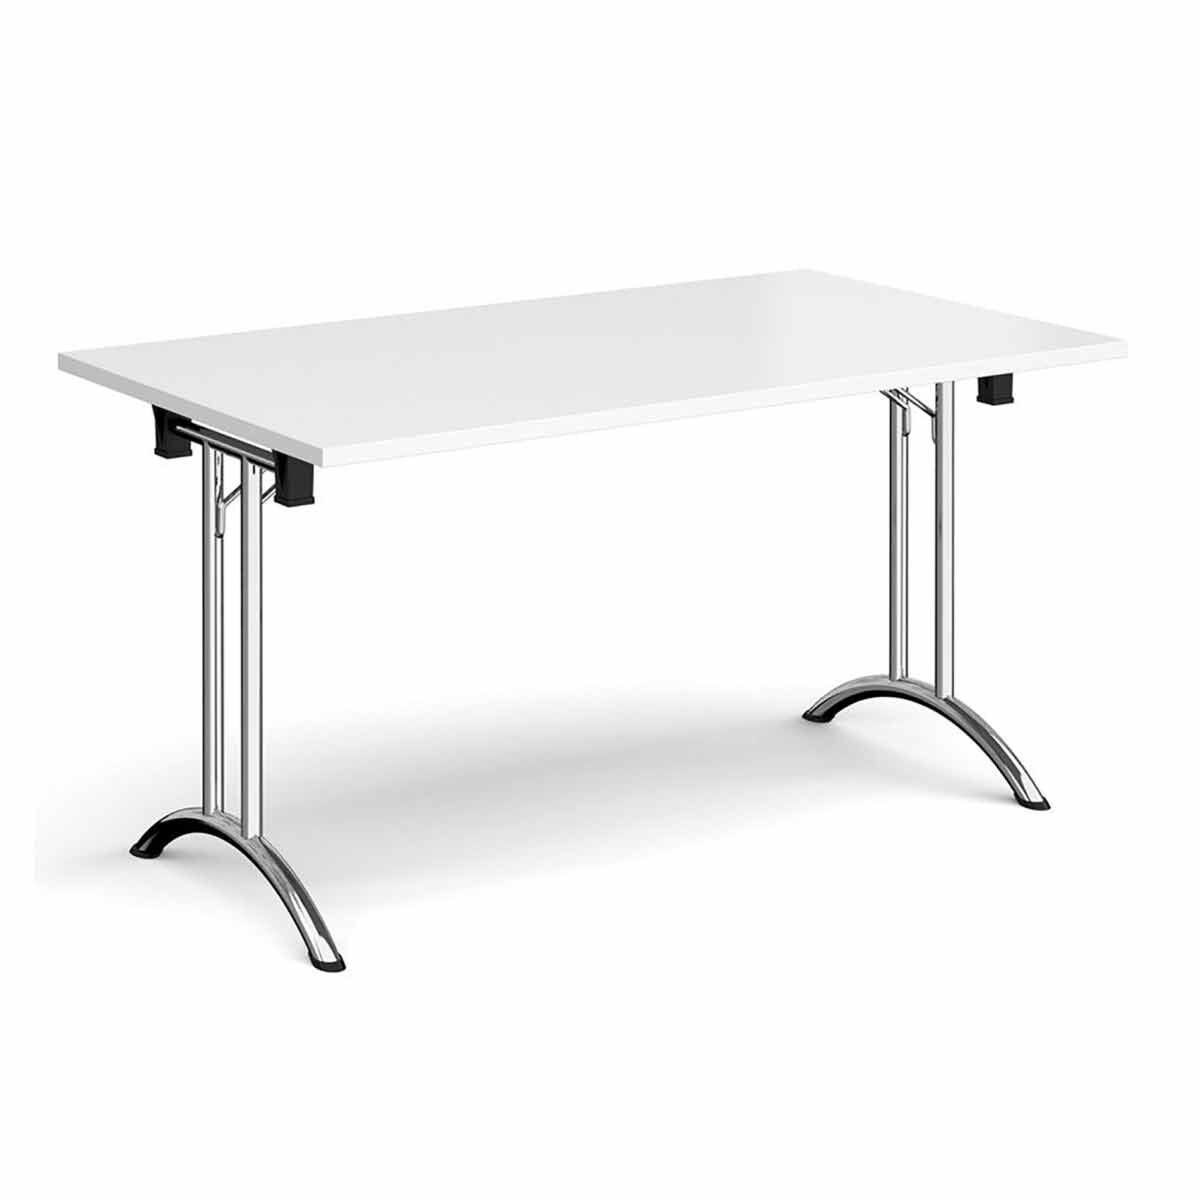 Tabilo Folding Table with Curved Chrome Frame 1800 x 800mm White